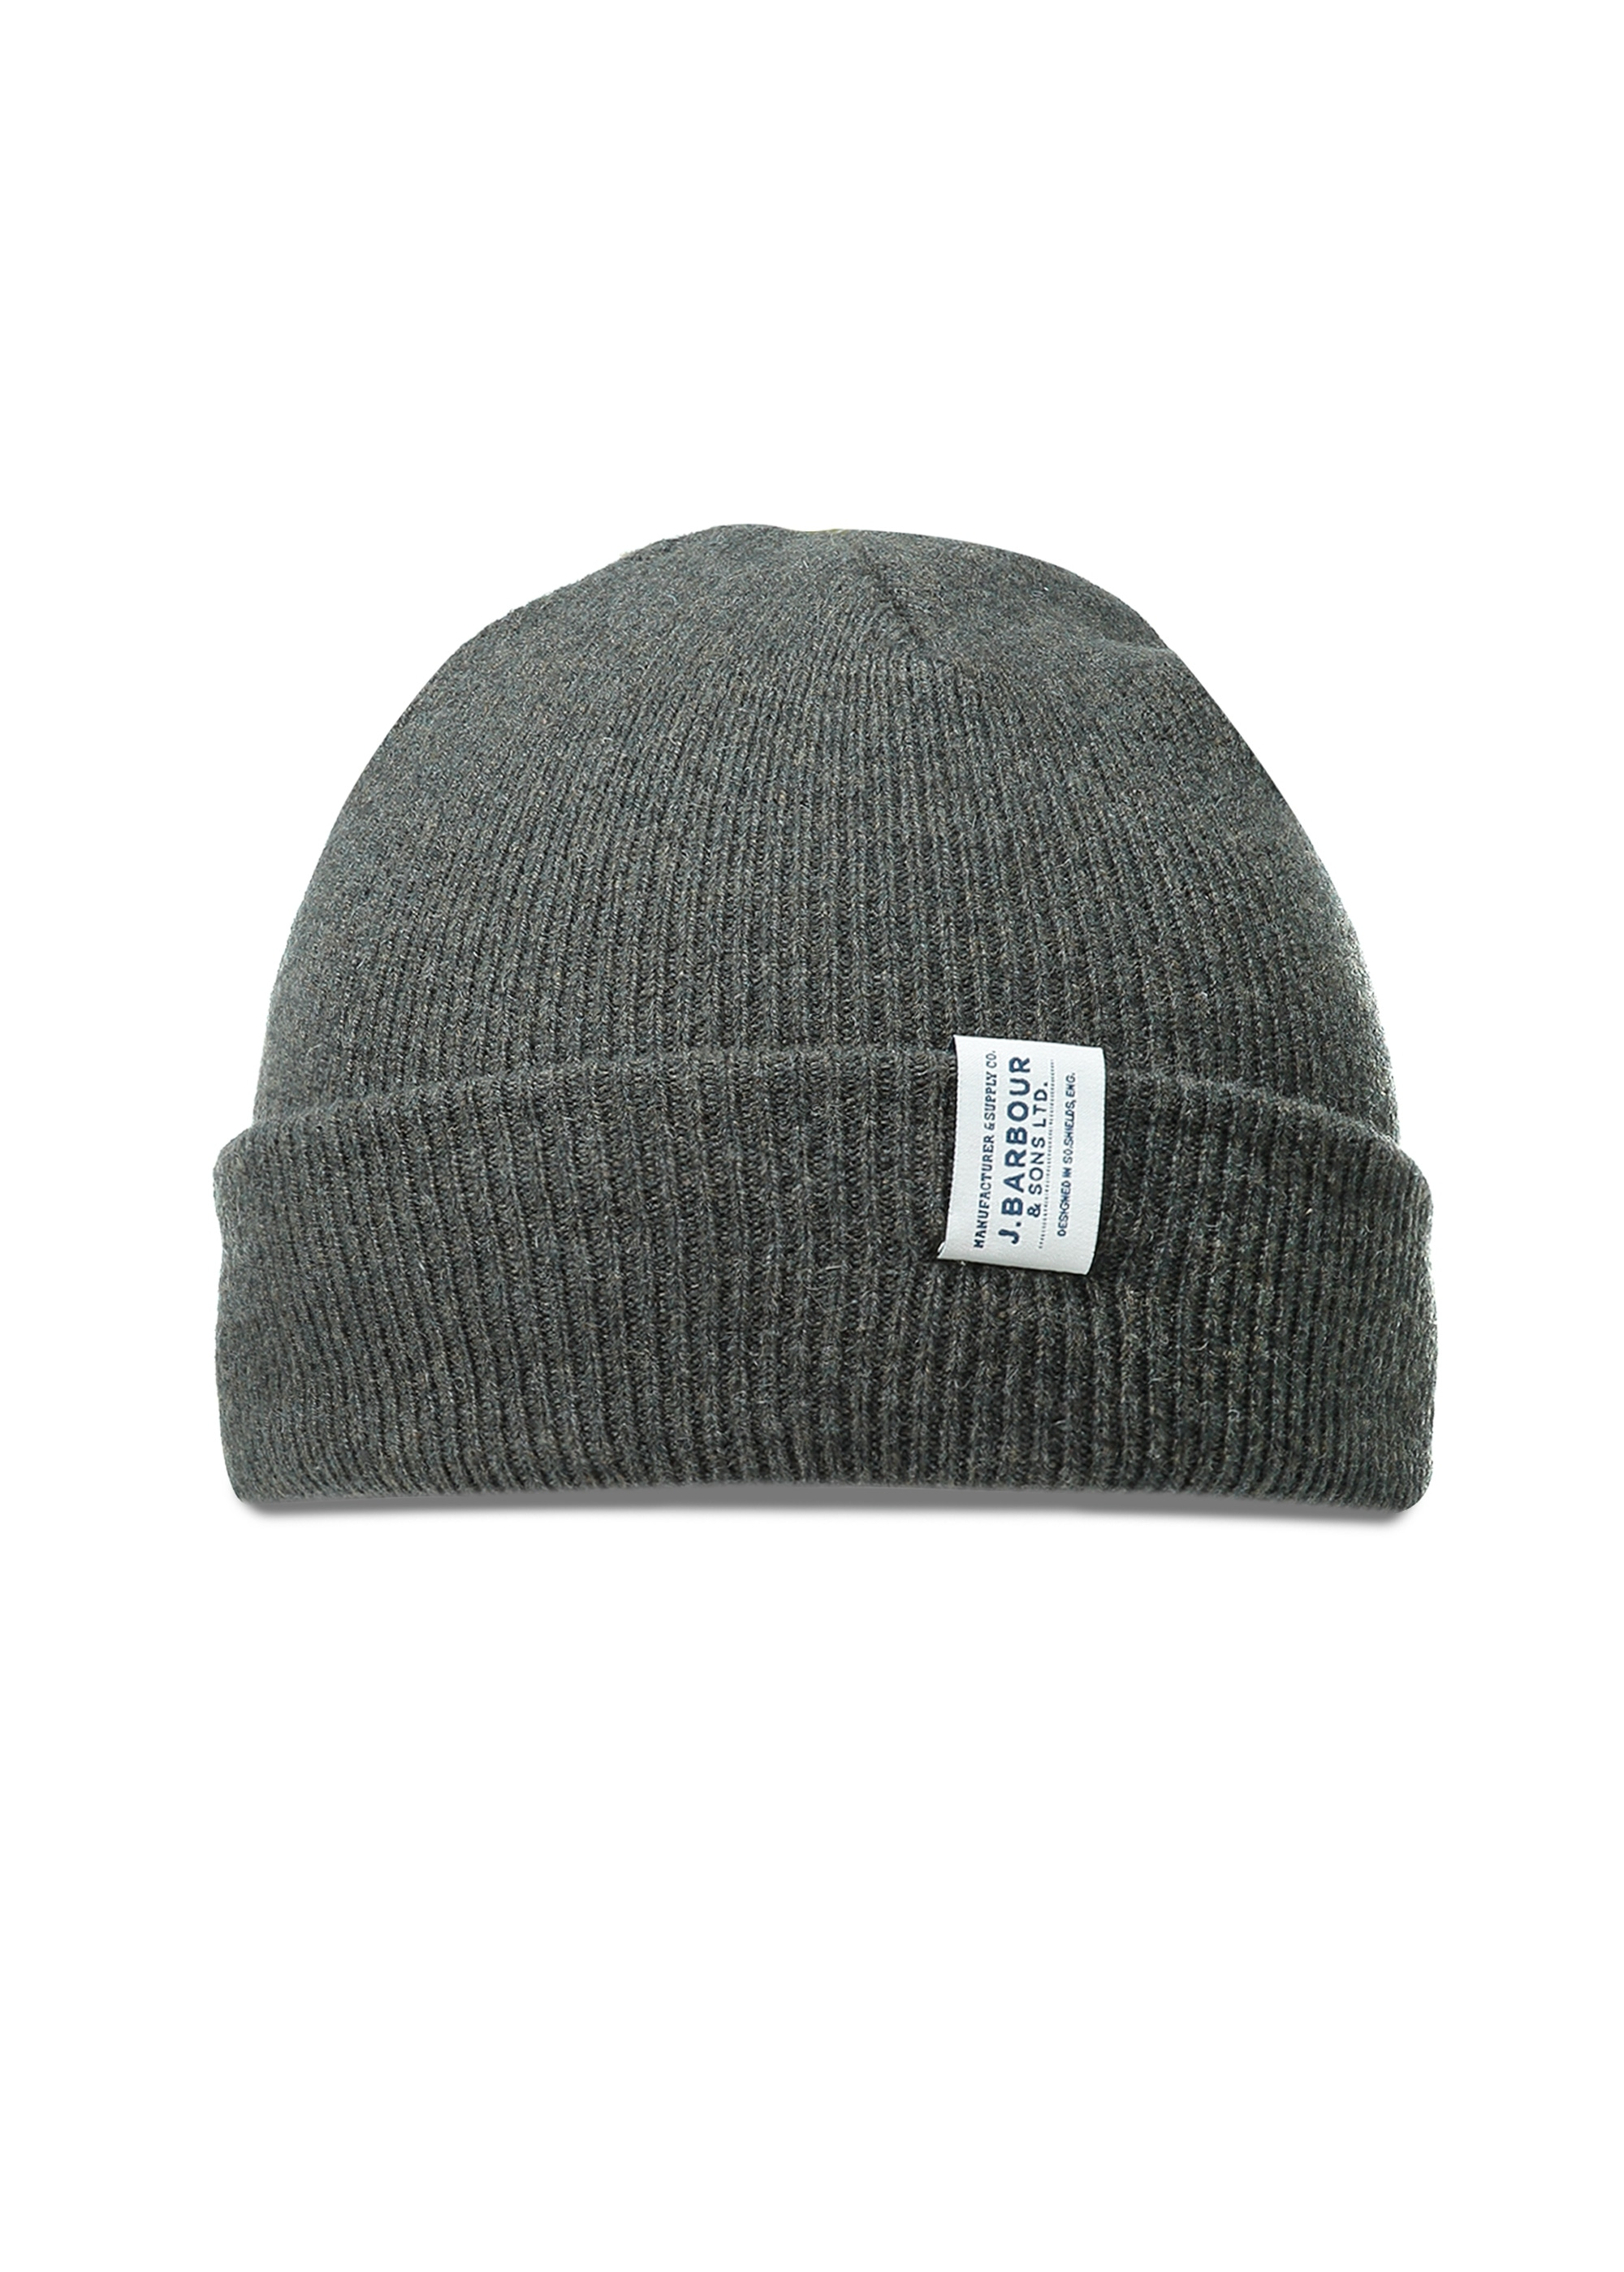 4381c2ea572 Barbour Lambswool Watch Cap - Olive - Headwear from Triads UK